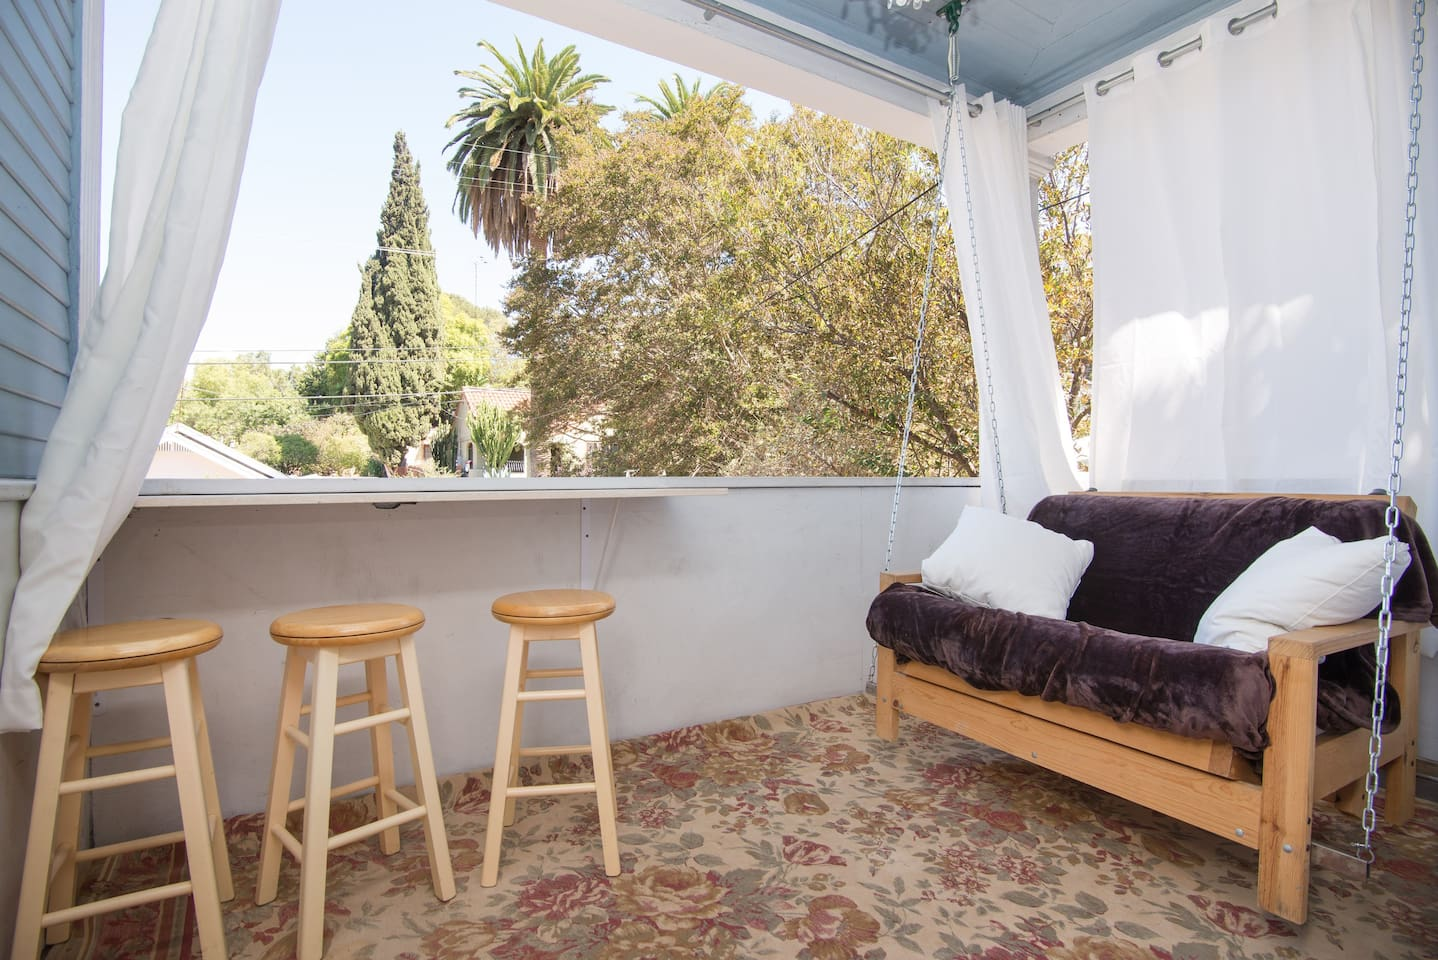 The private porch has a three seat bar to comfortably have a cup or coffee, enjoy a meal, set up a work station or simply watch the neighbors walk their dogs to the nearby park.